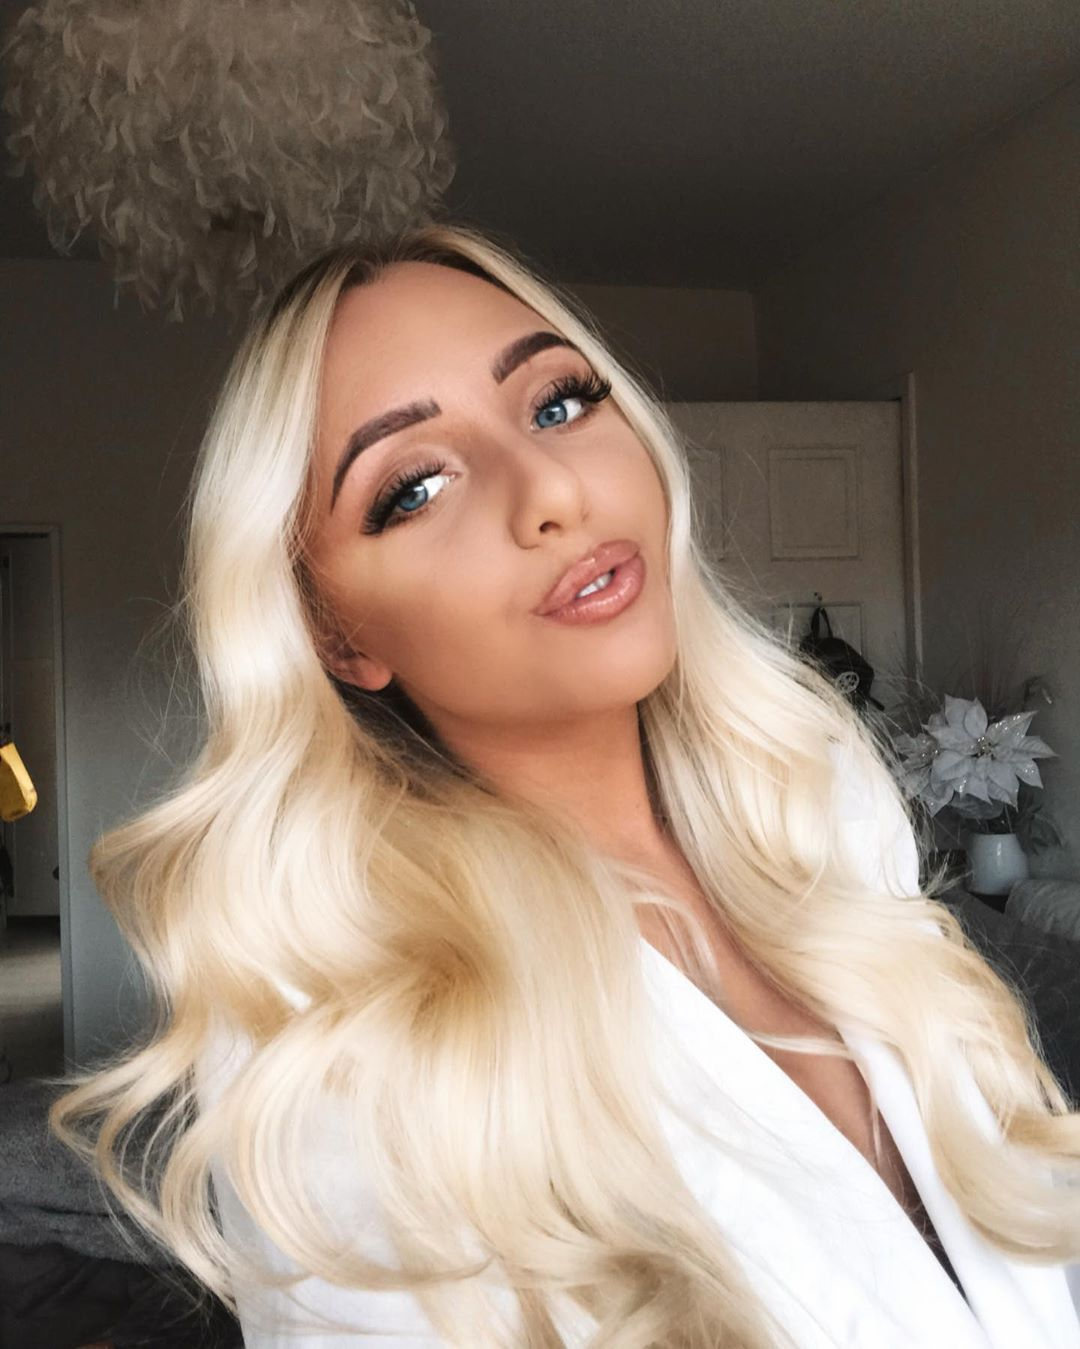 Image may contain: Casa Amor, Love Island, Millie Roberts, Tommy Fury, ex, Islander, cast, date, return, Portrait, Photo, Photography, Clothing, Apparel, Home Decor, Kid, Woman, Female, Blonde, Child, Teen, Girl, Hair, Face, Human, Person